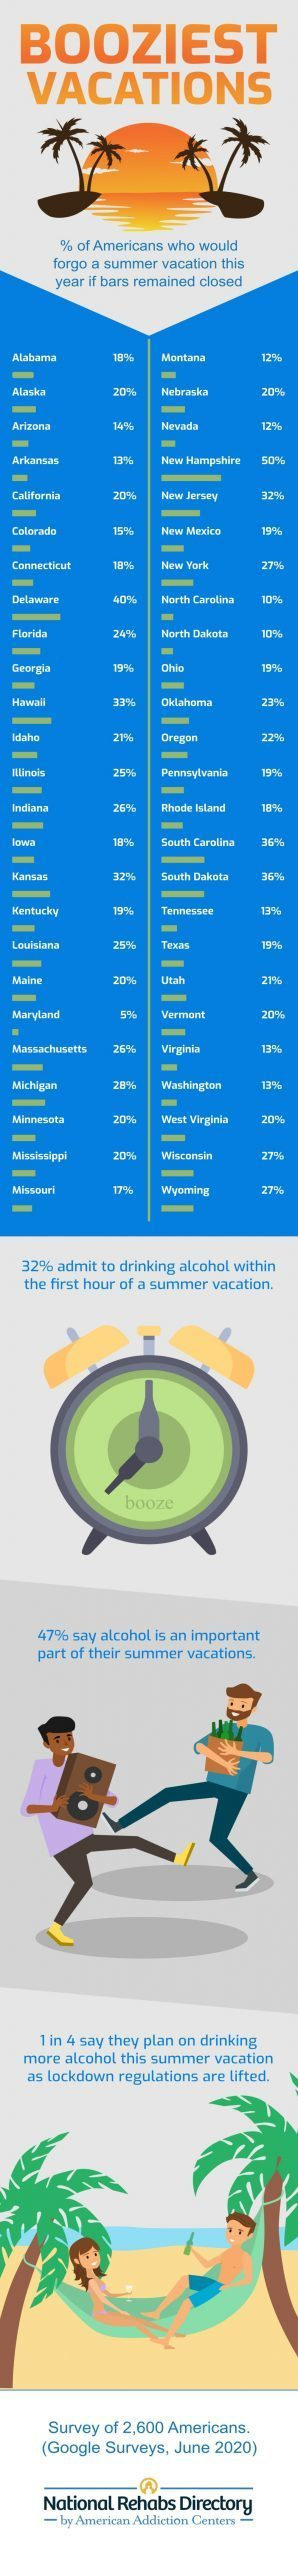 Booziest-vacations-infographic-2-3-